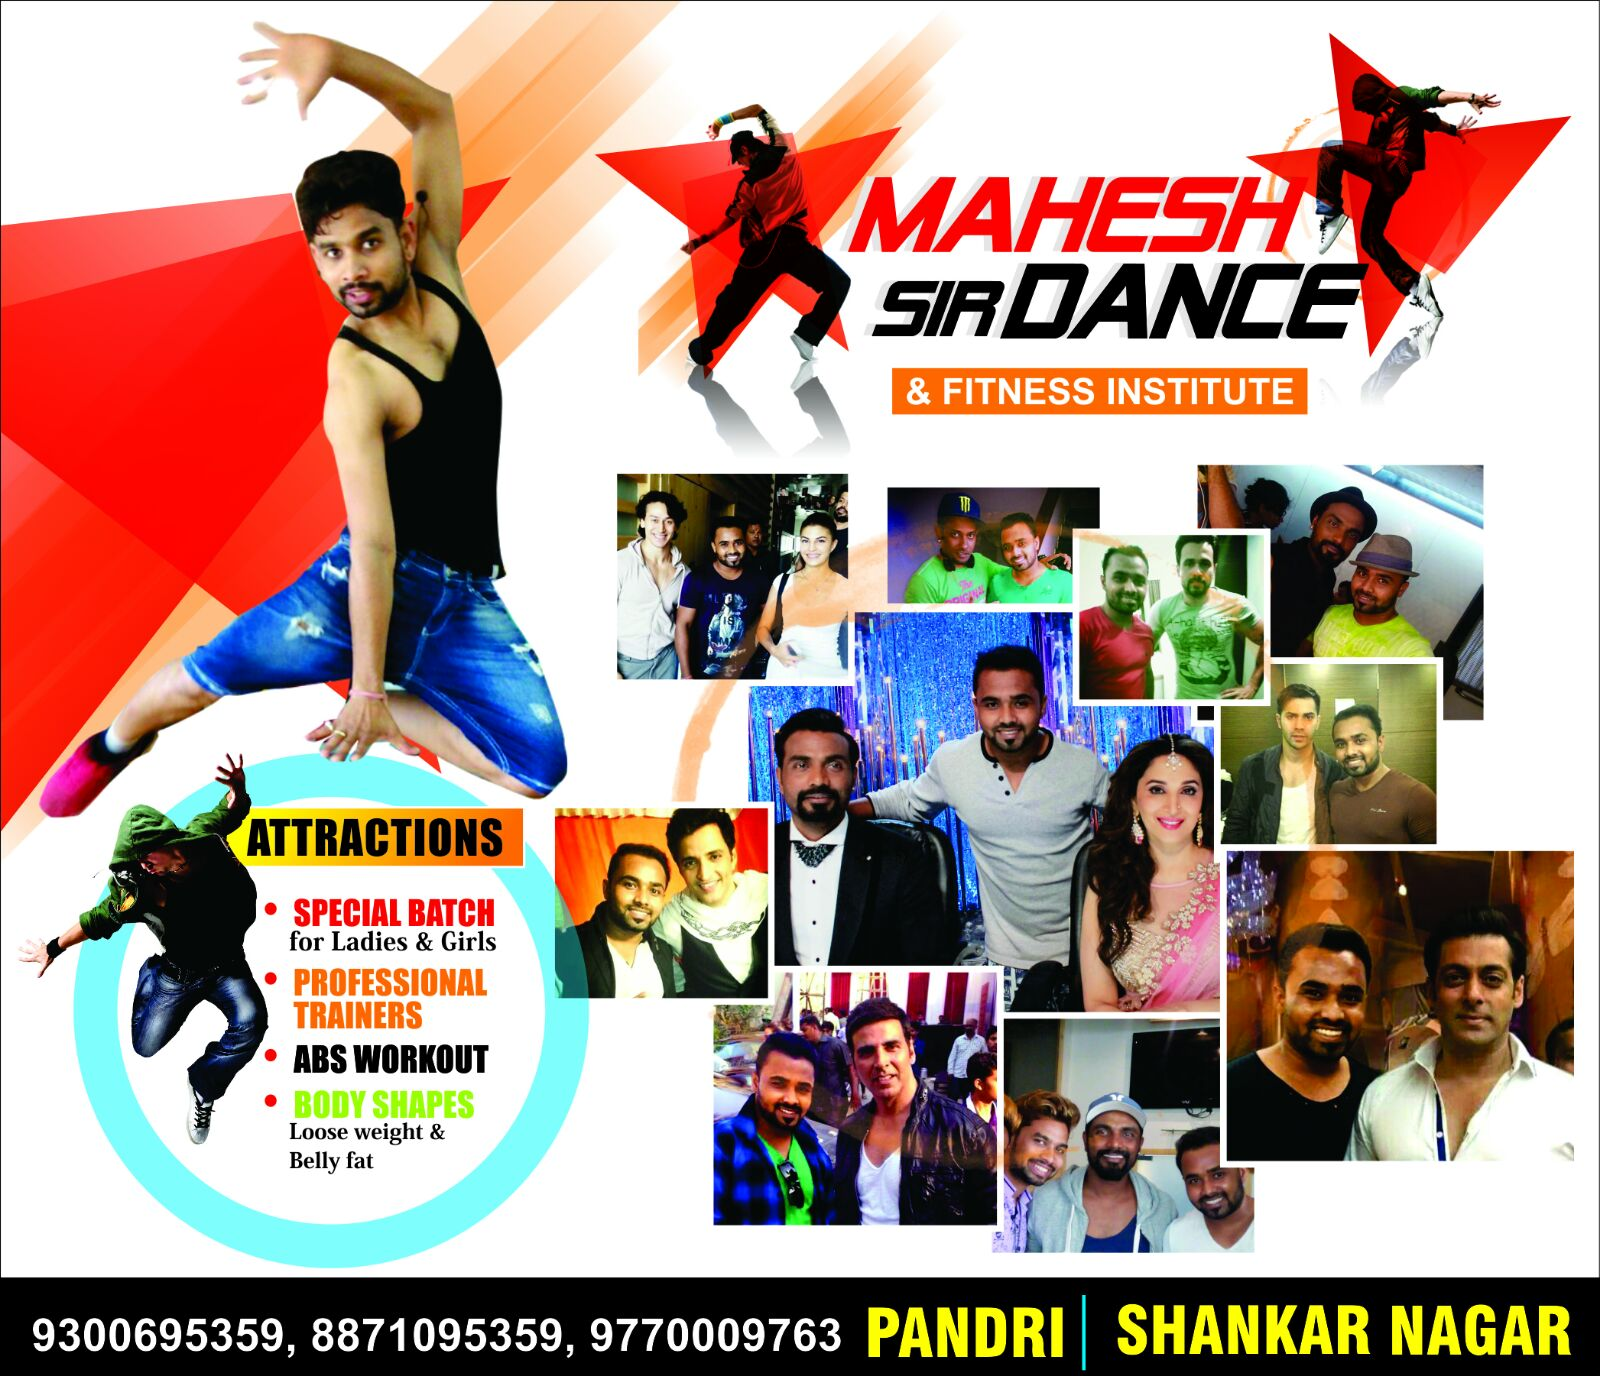 Mahesh Sir Dance - logo